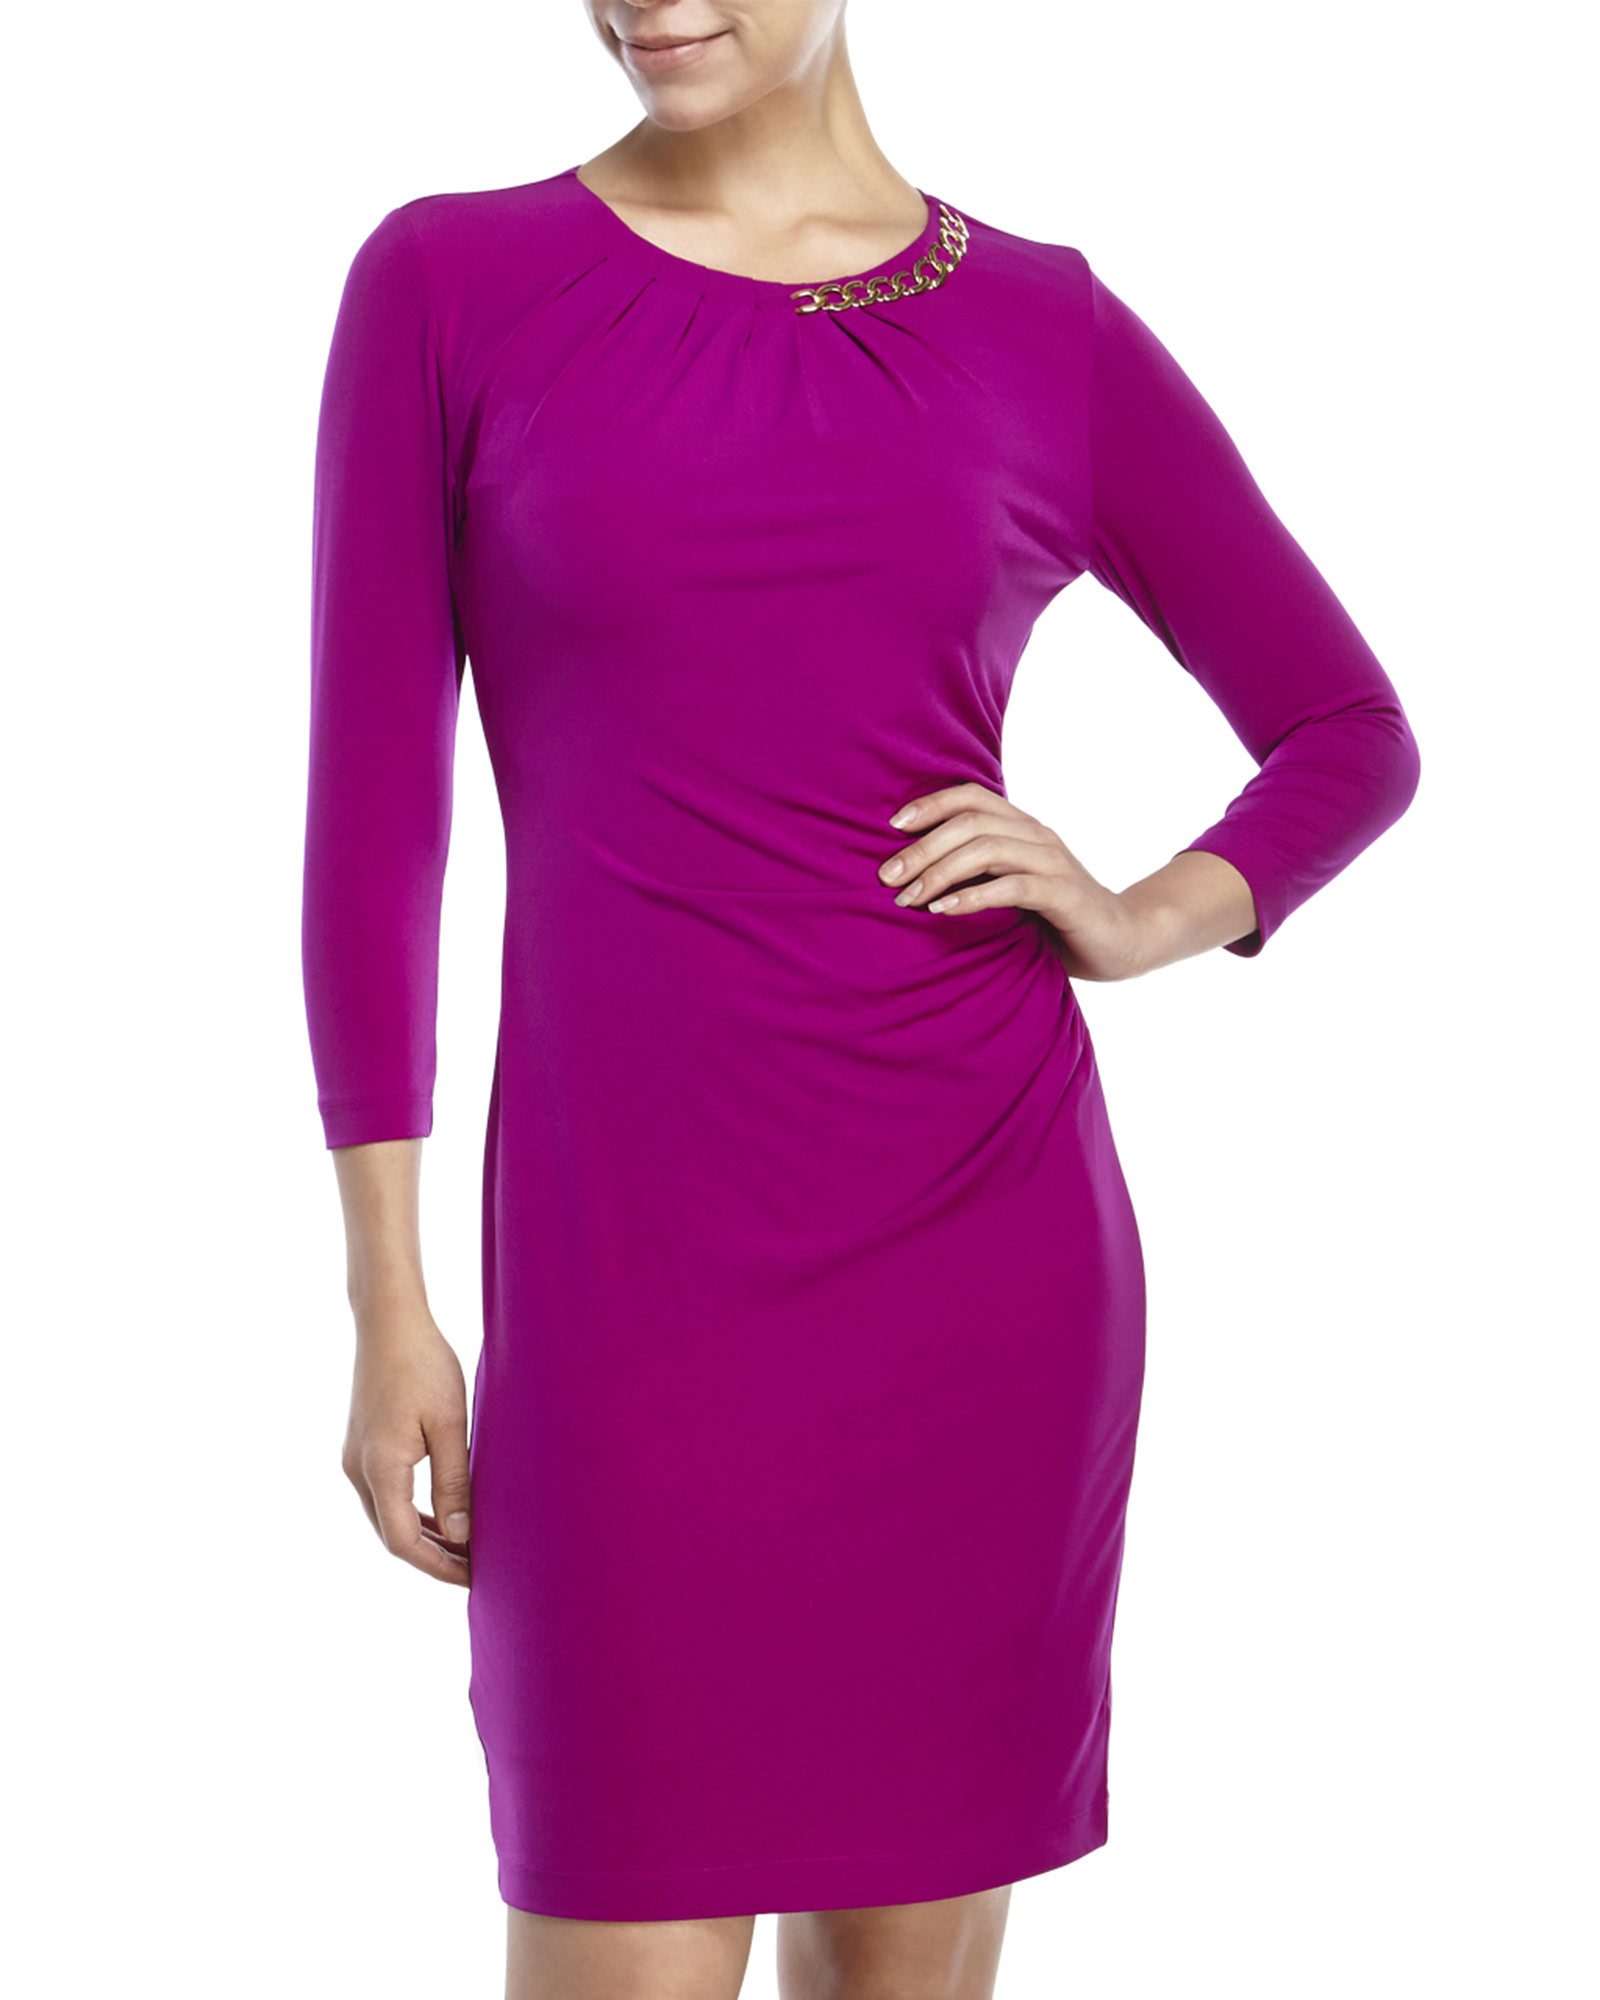 e98119d4 Tahari Petite Solid Sheath Dress in Purple - Lyst